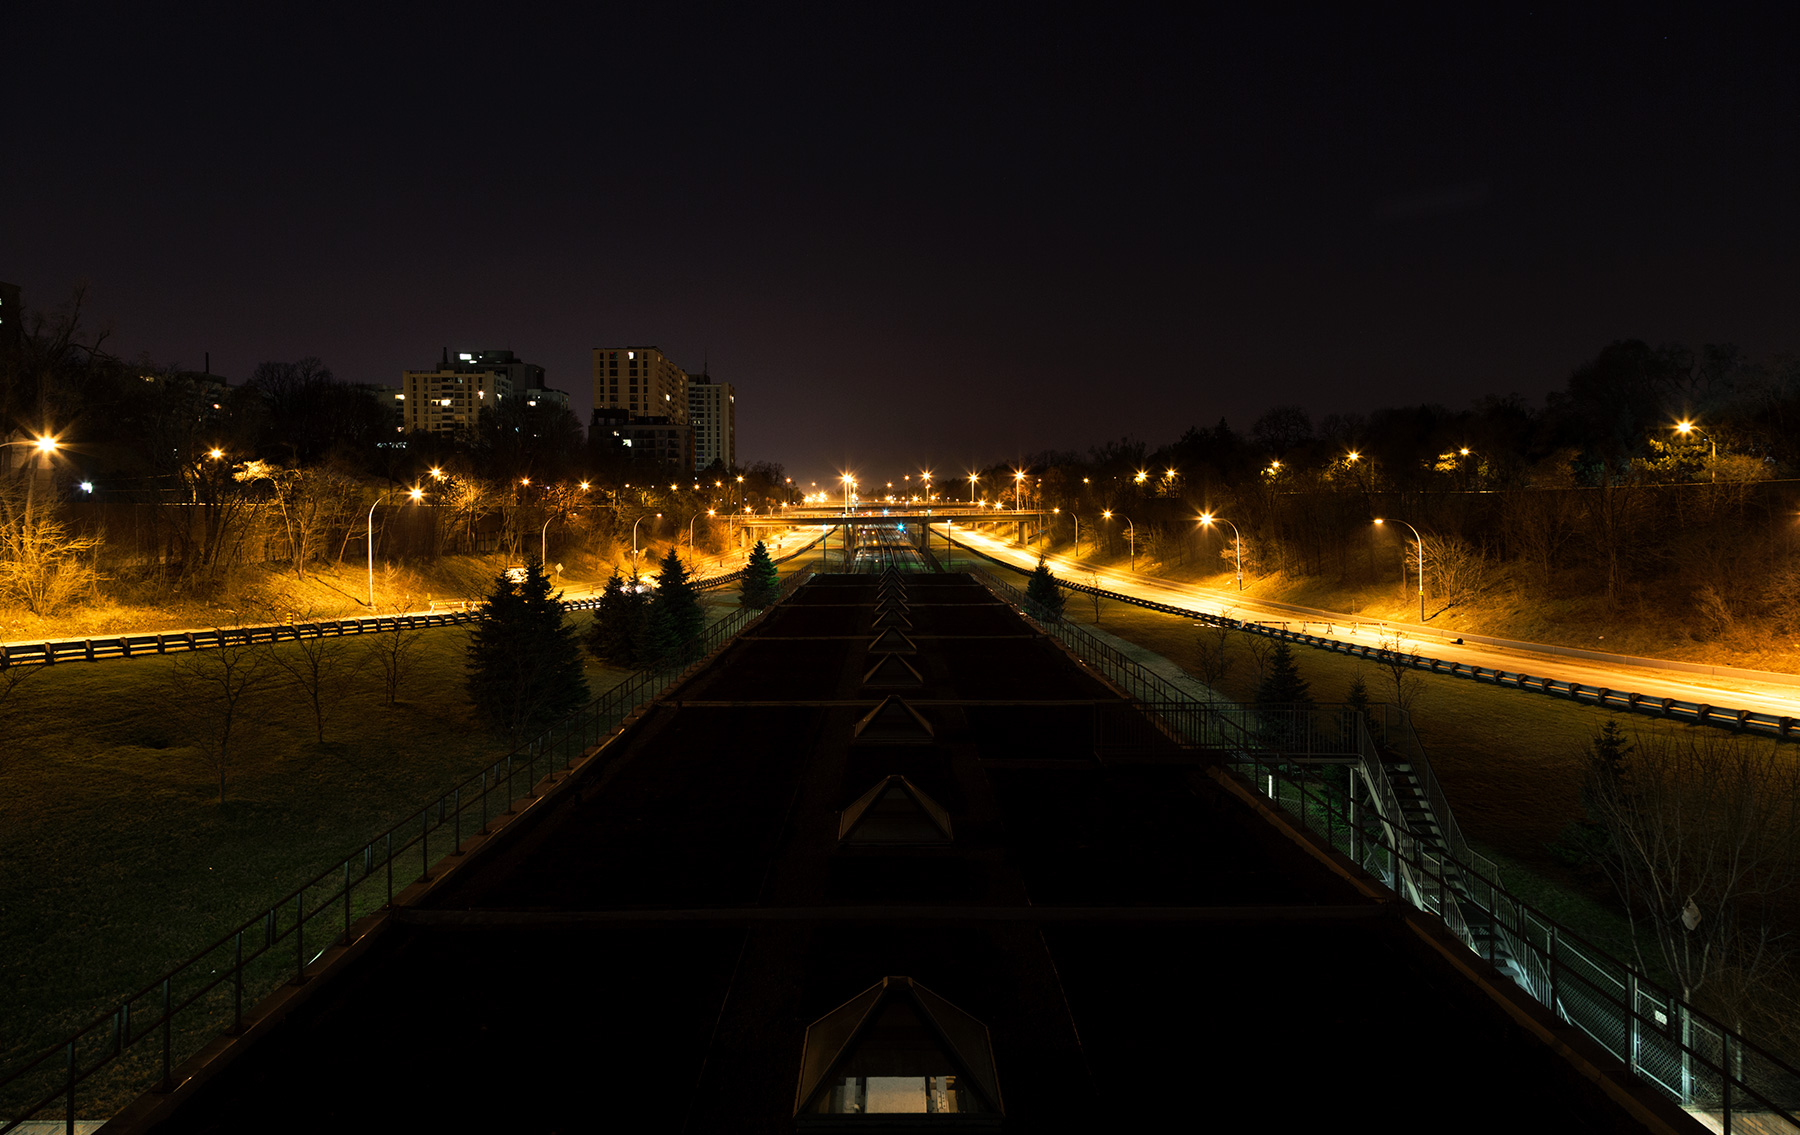 20150419. Above a dark TTC Eglinton West station flanked on both